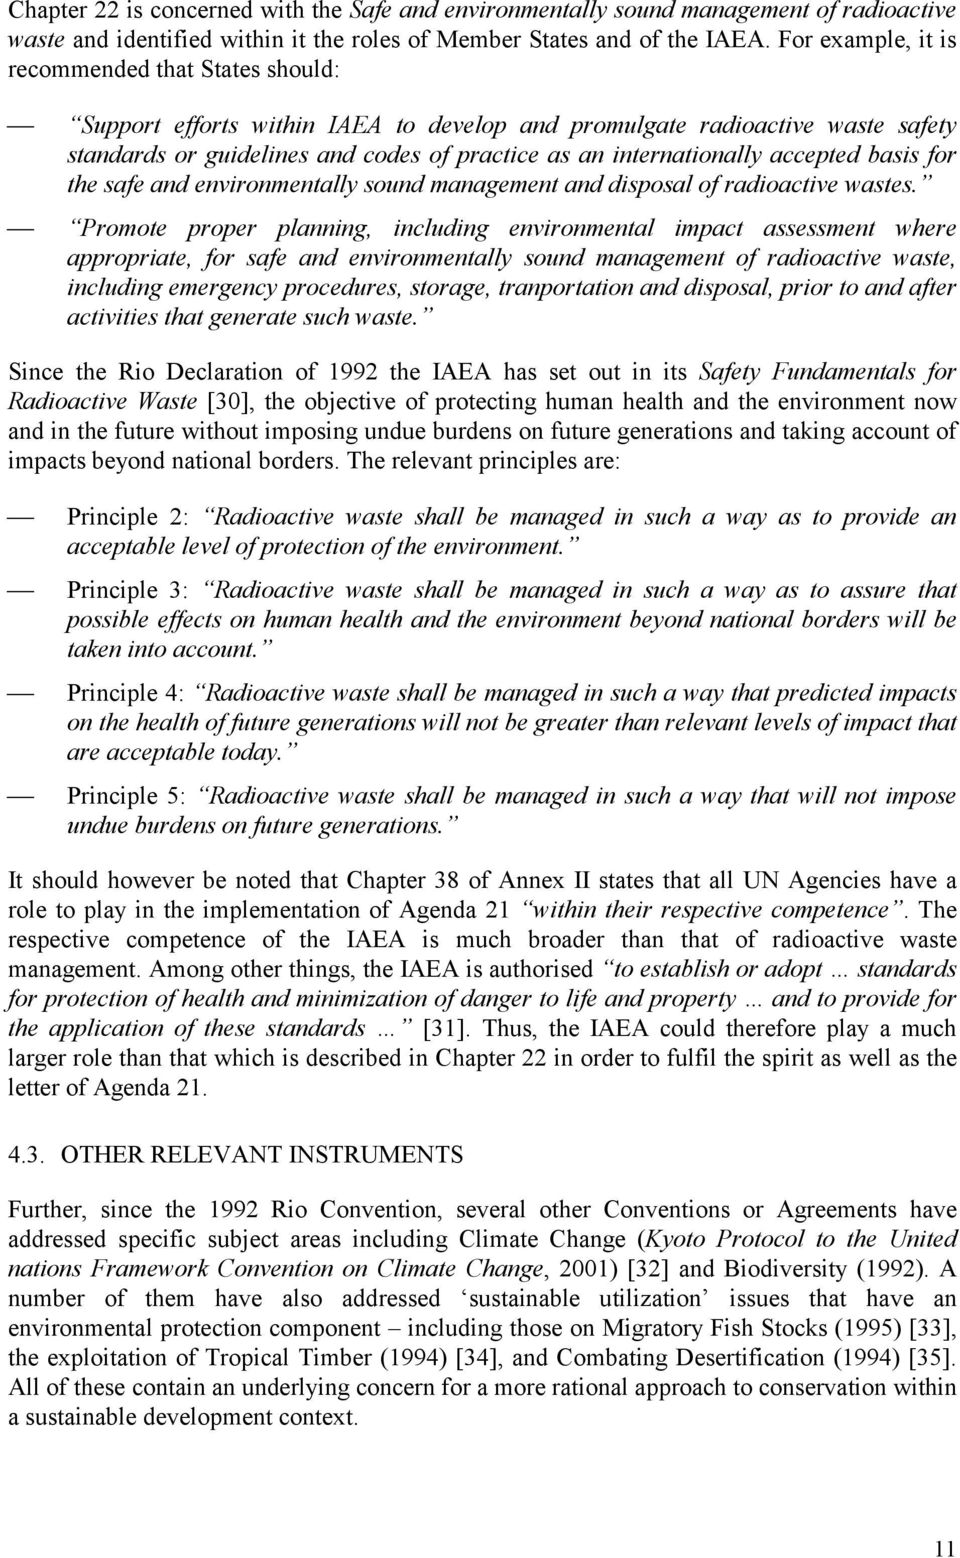 accepted basis for the safe and environmentally sound management and disposal of radioactive wastes.